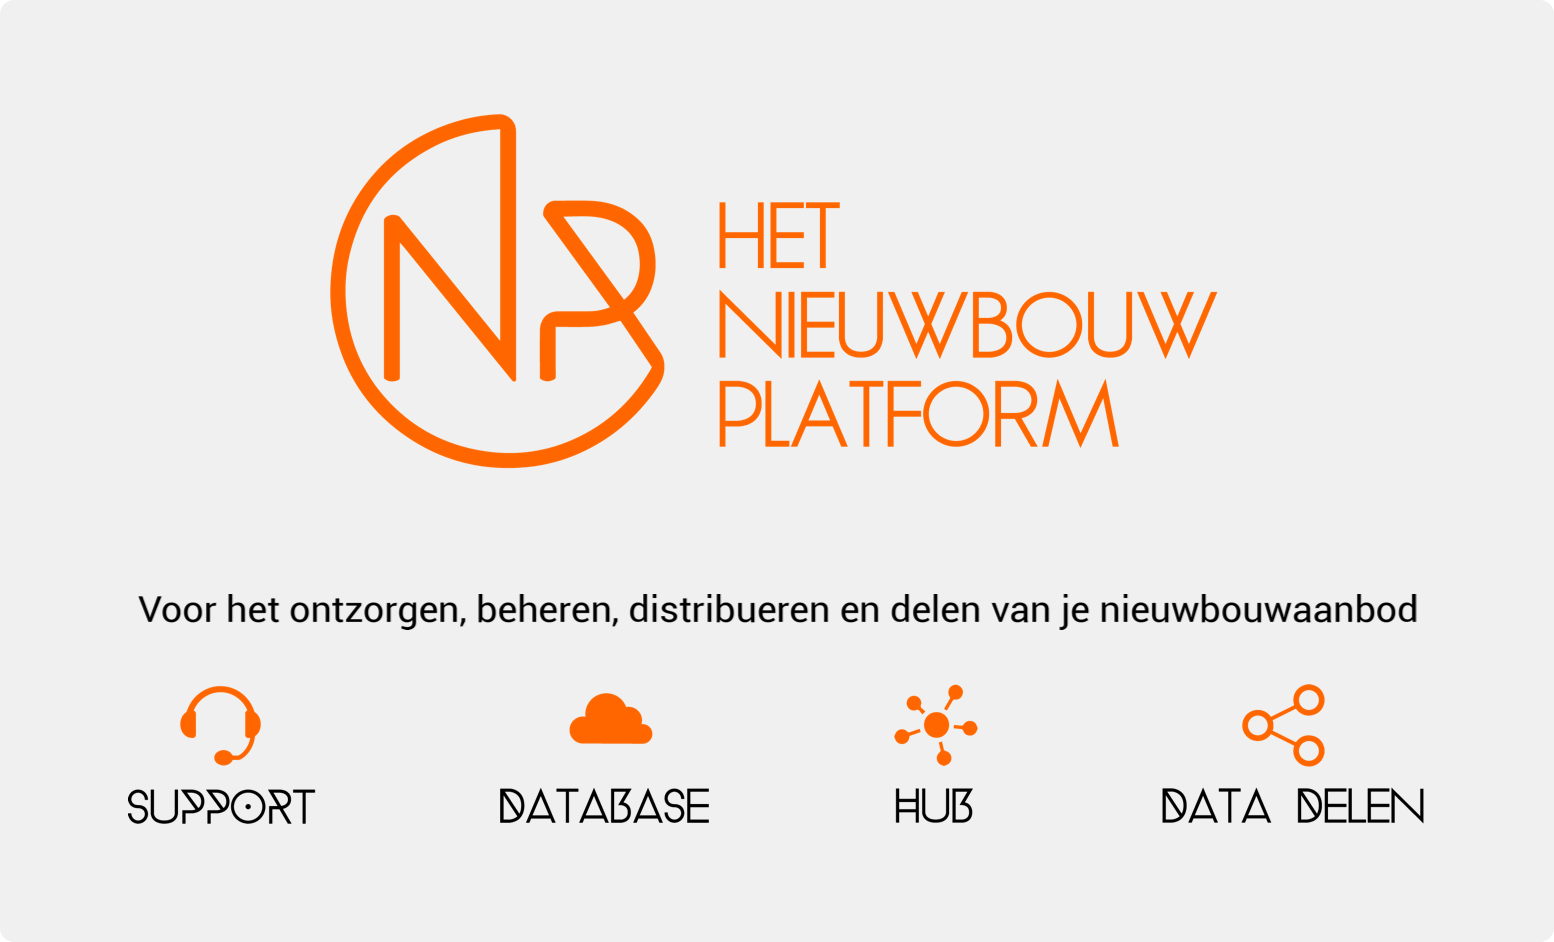 Support, Database, Hub, Data Delen